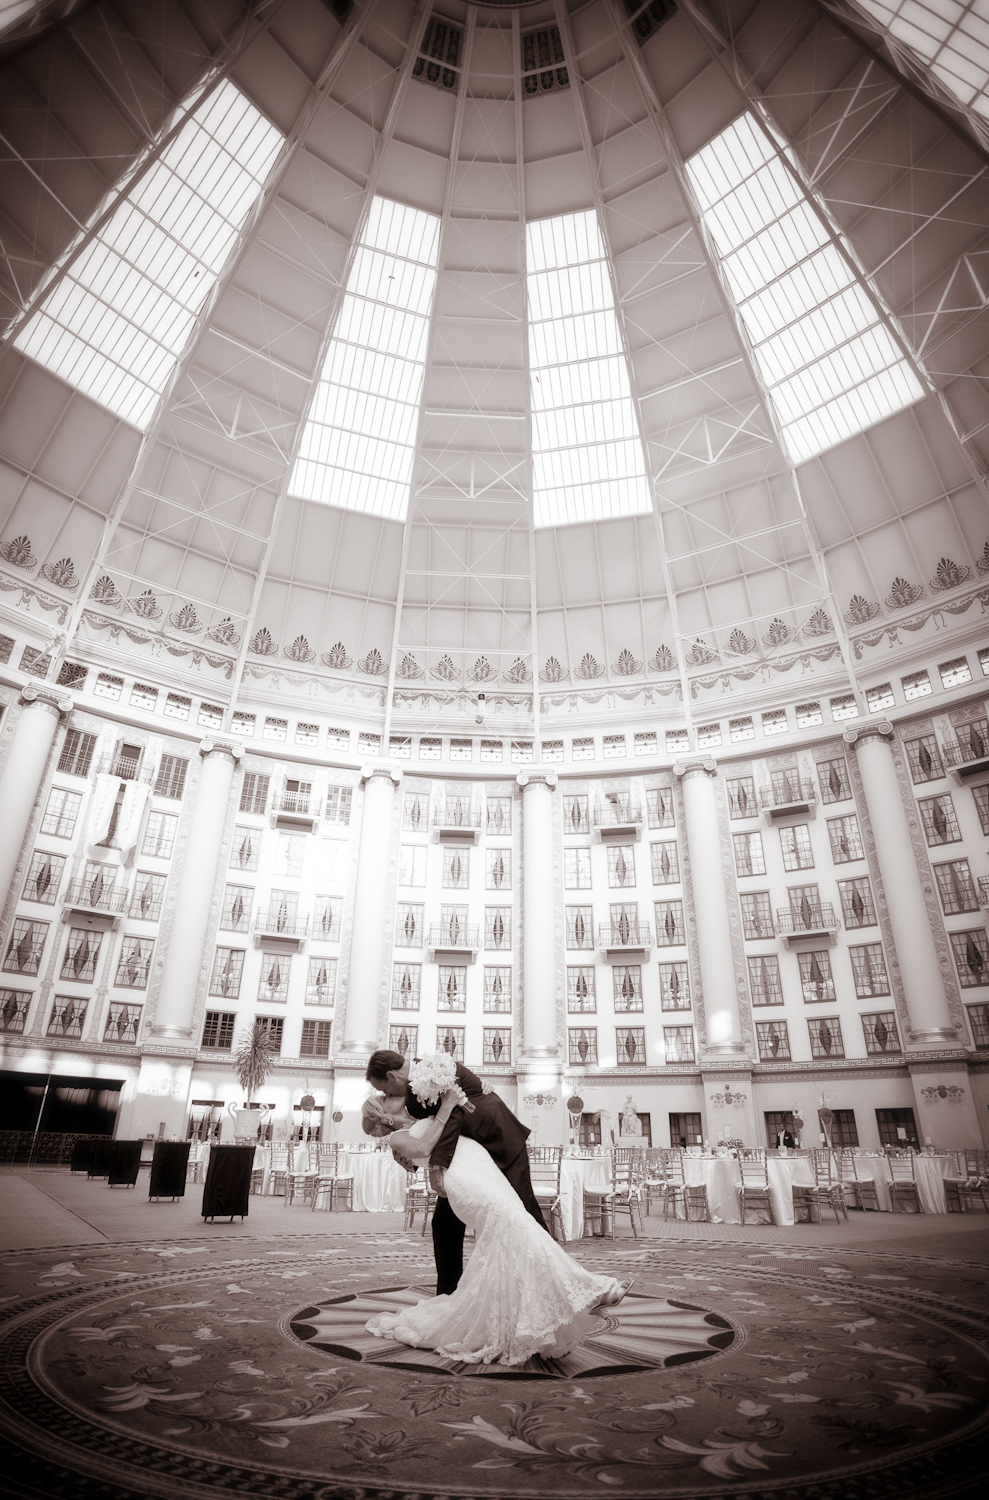 West-Baden-Springs-Hotel-Indiana-Wedding-Photographer-Crowes-Eye-Photography-Bride-and-Groom.jpg